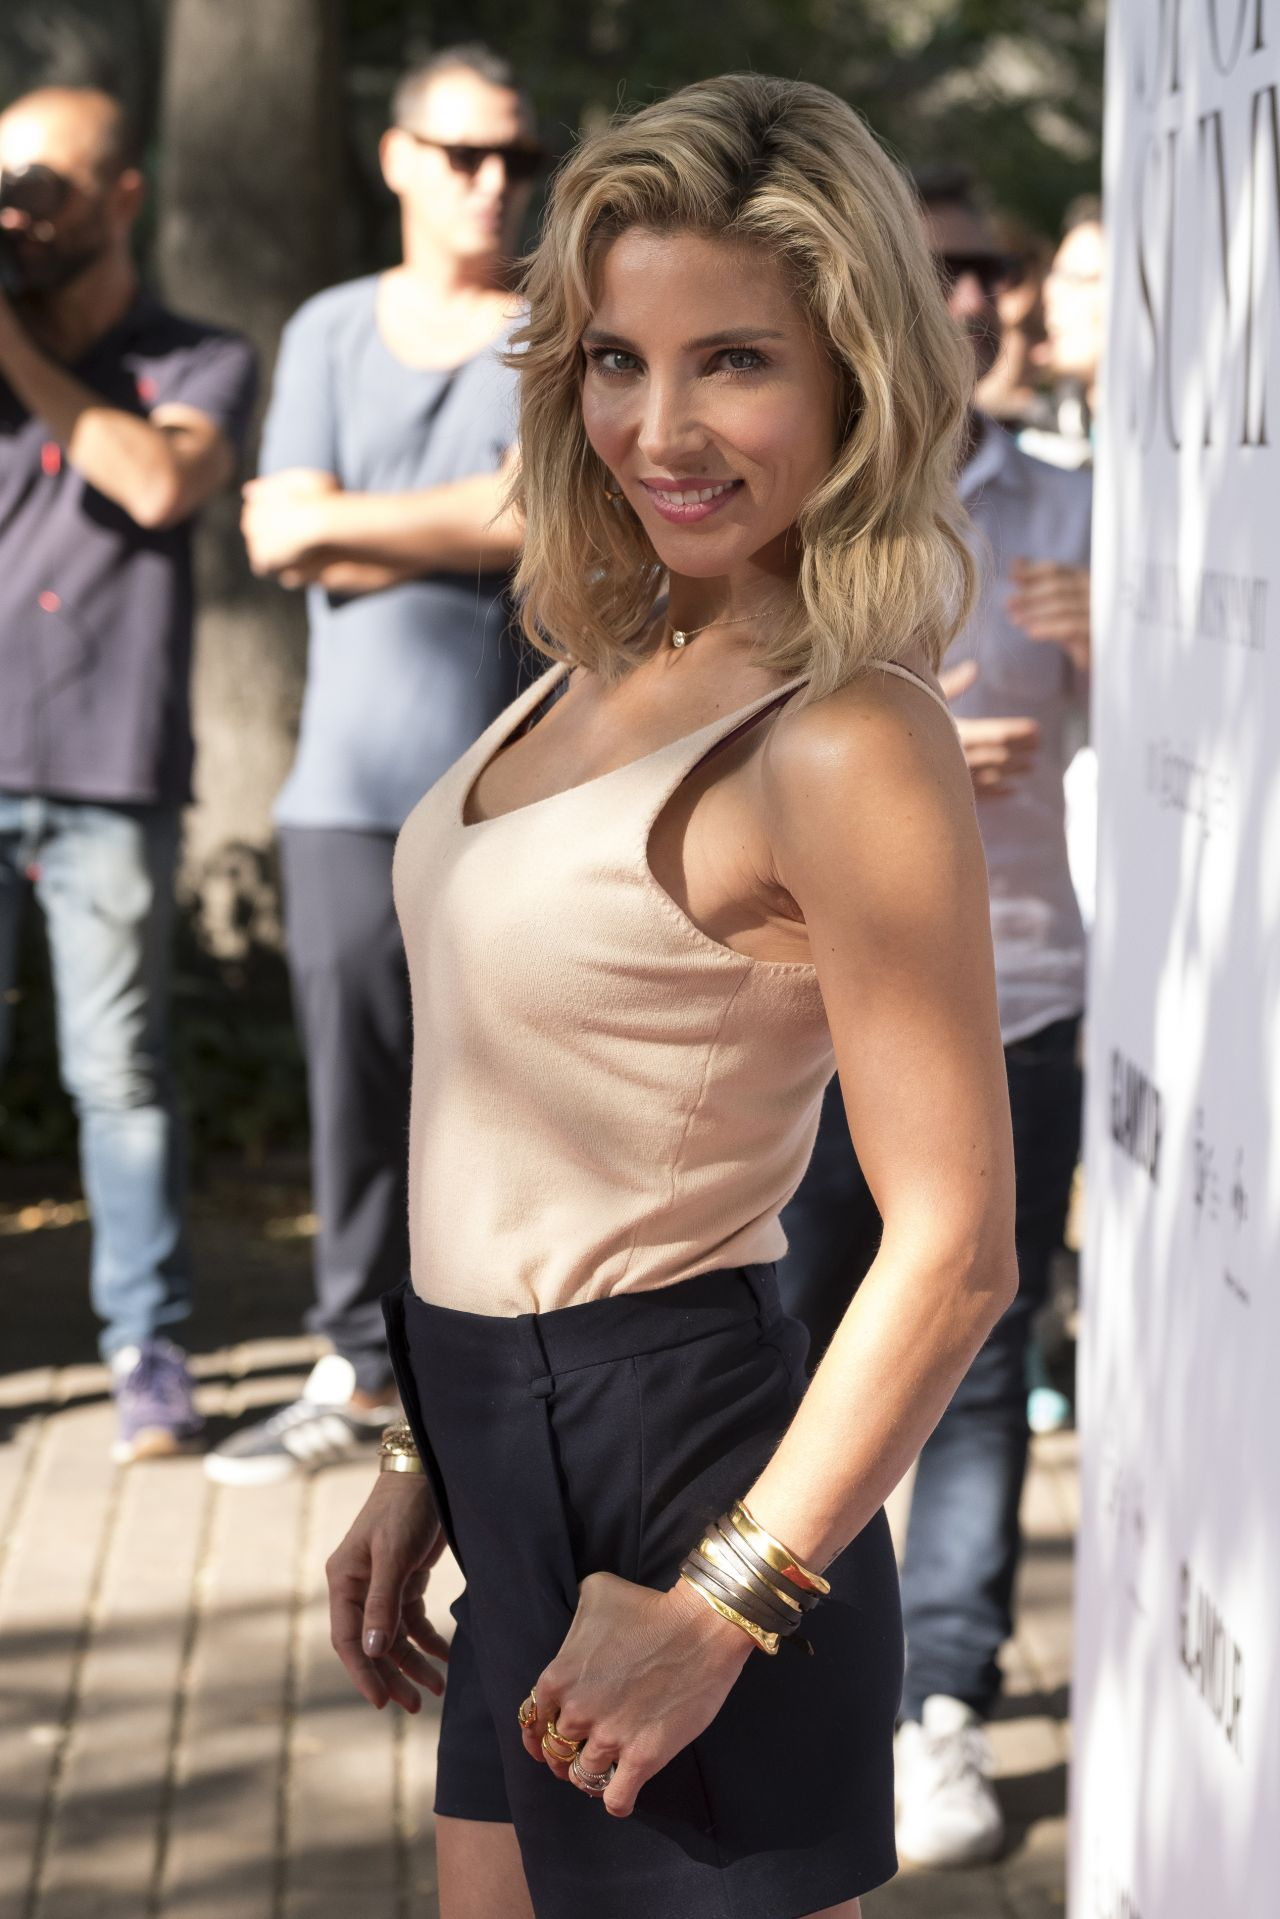 Elsa Pataky Glamour Sport Summit In Madrid 09 23 2017